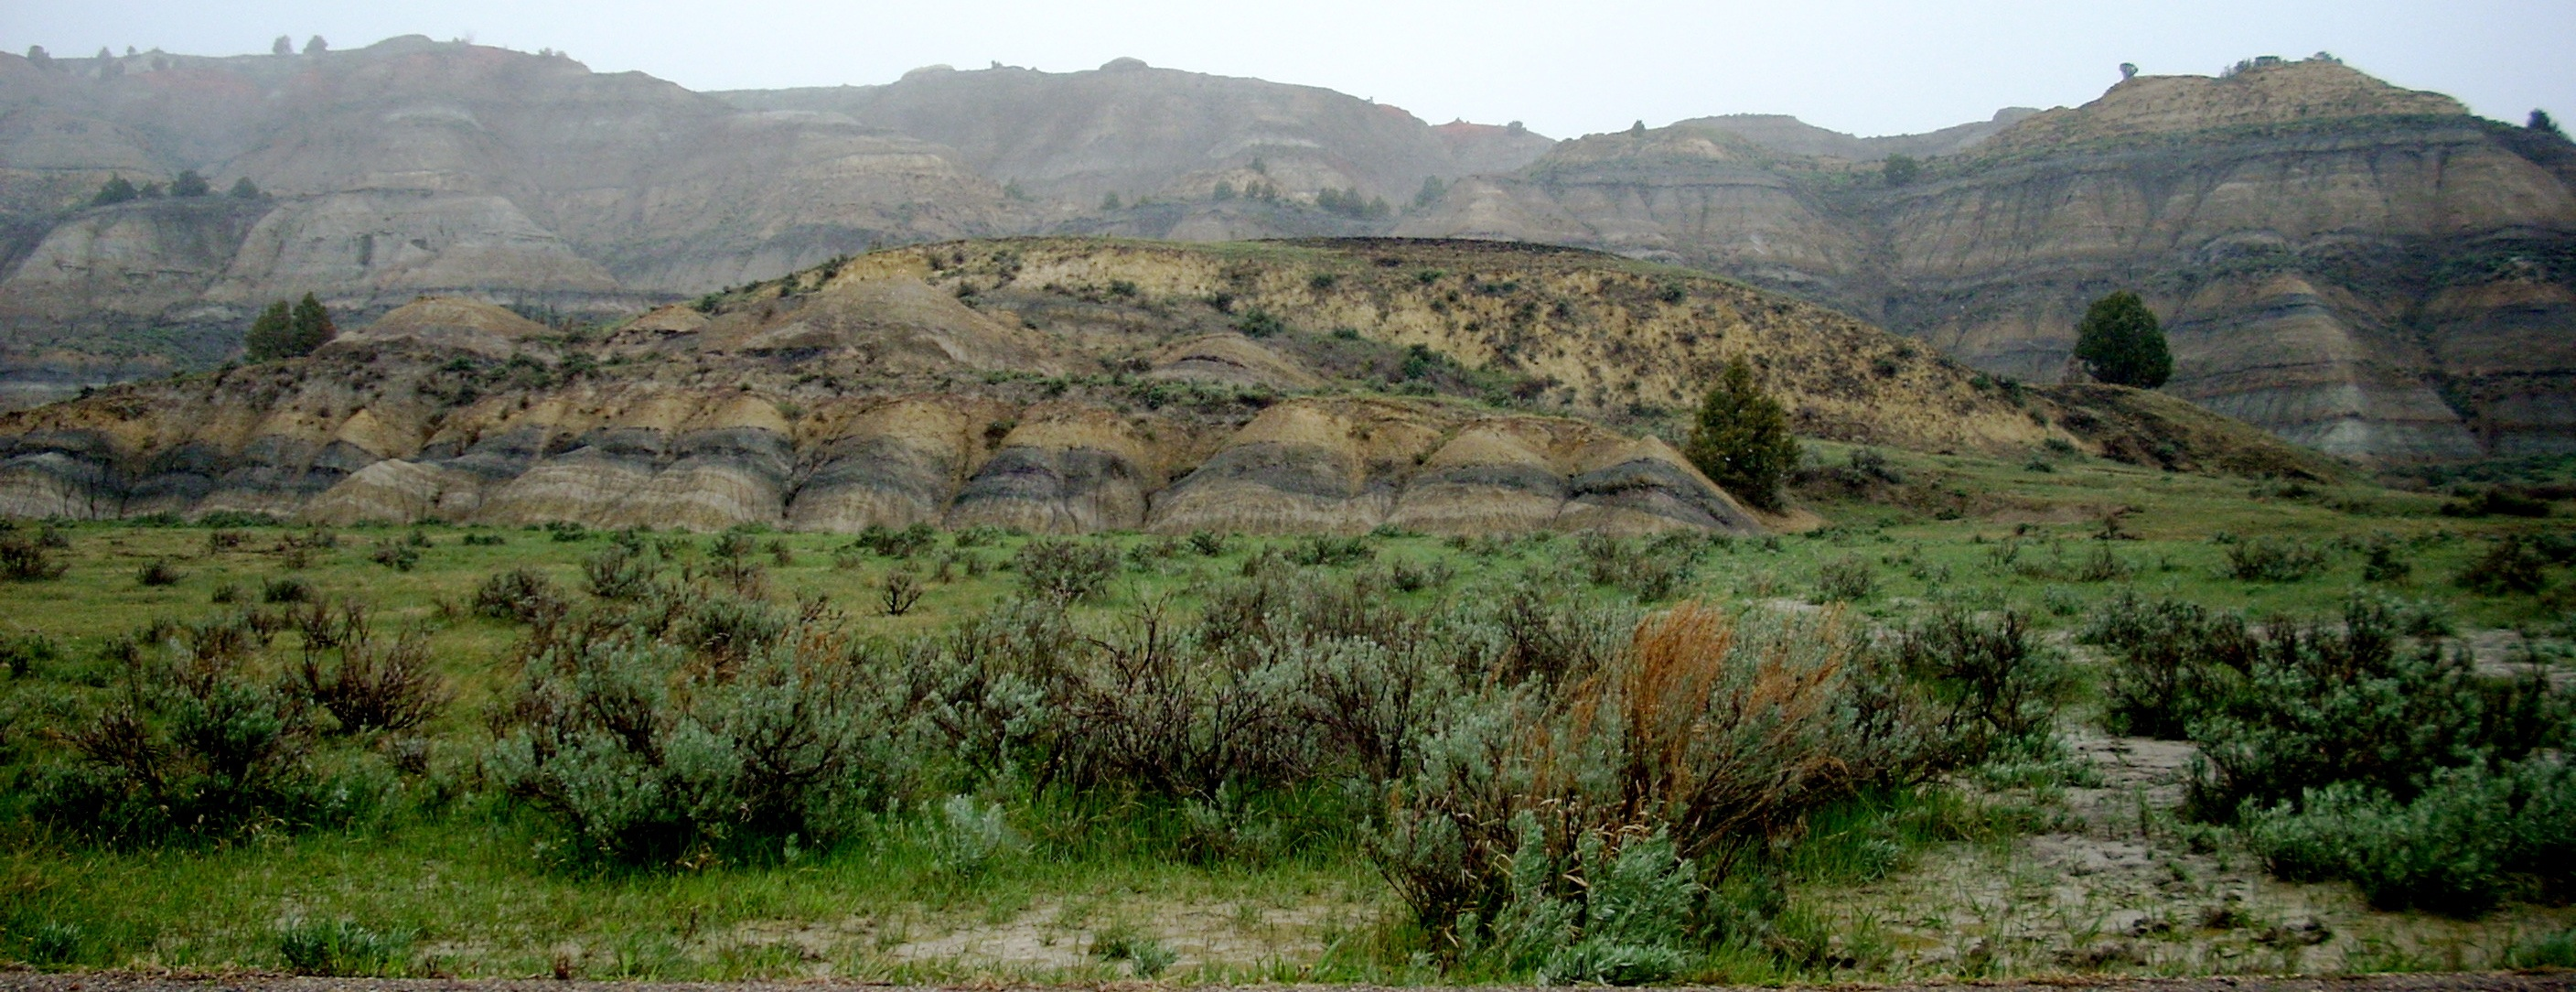 """grassy butte latin singles Instantly view over 3 homes for sale in medora, nd on realestatecom use our """"all-in monthly pricing"""" tool to help you search medora homes that fit comfortably within your monthly budget."""